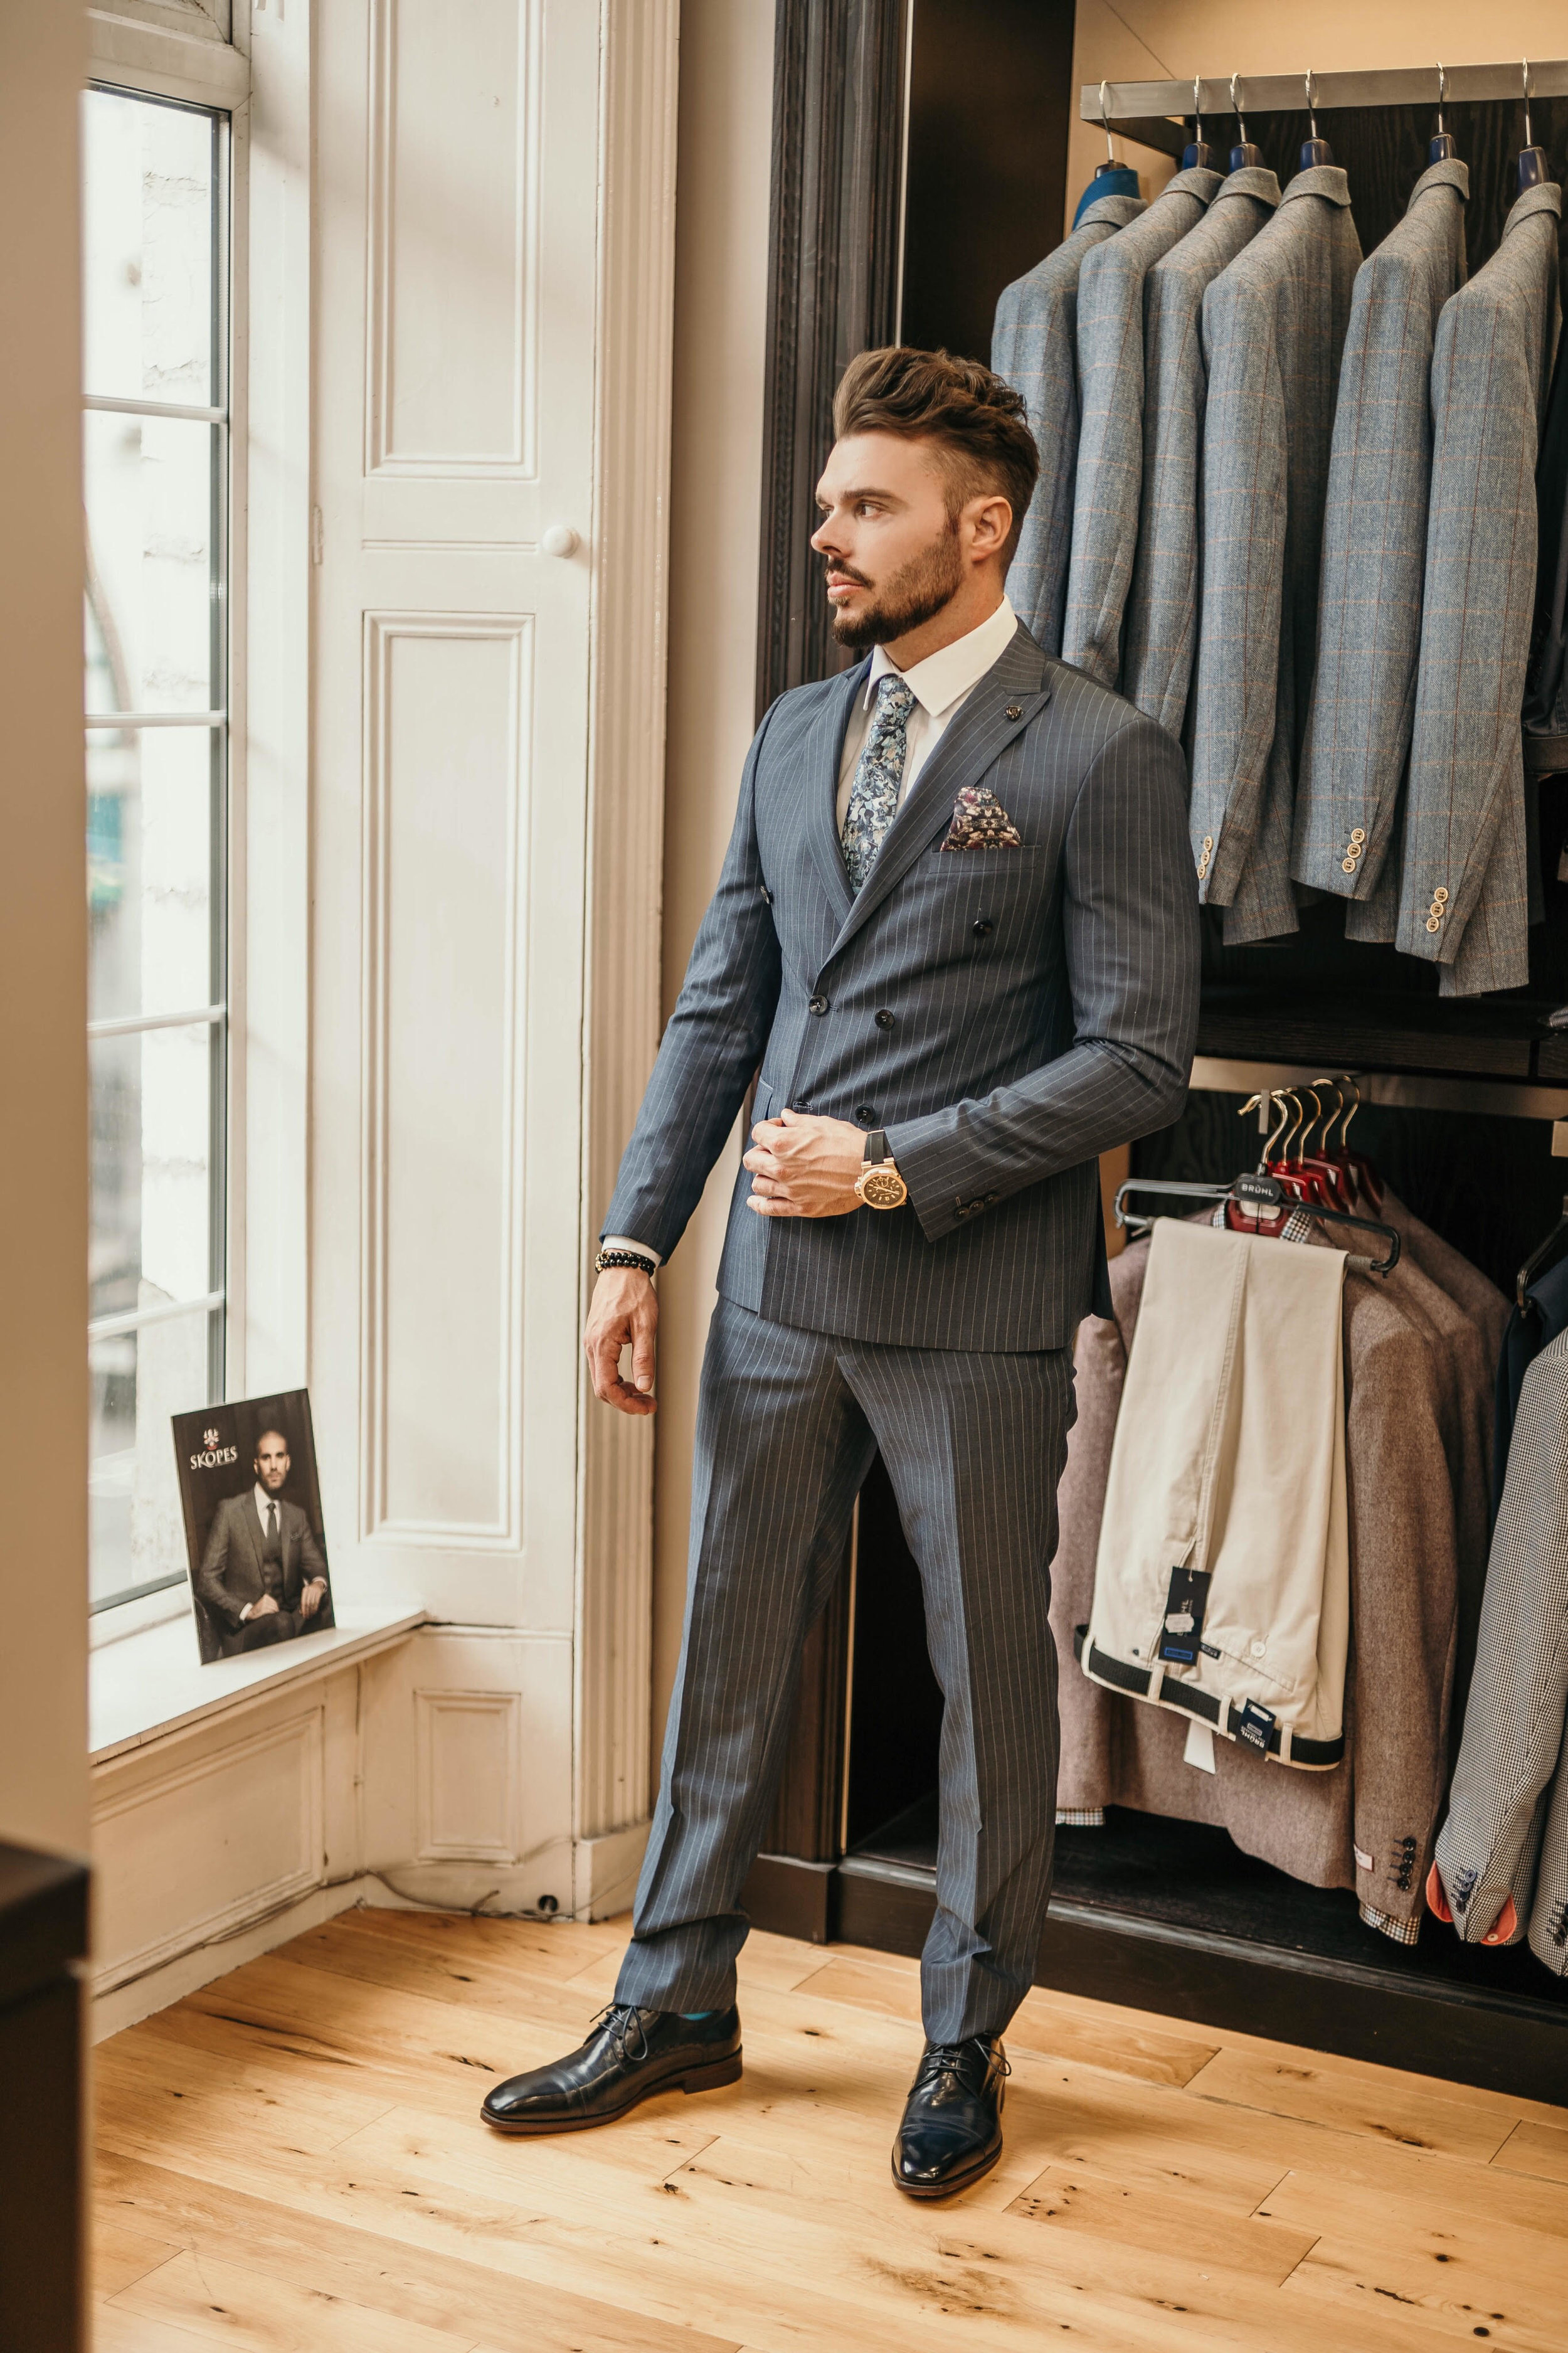 This Benetti double-breasted suit is available from Connolly Men in Limerick.